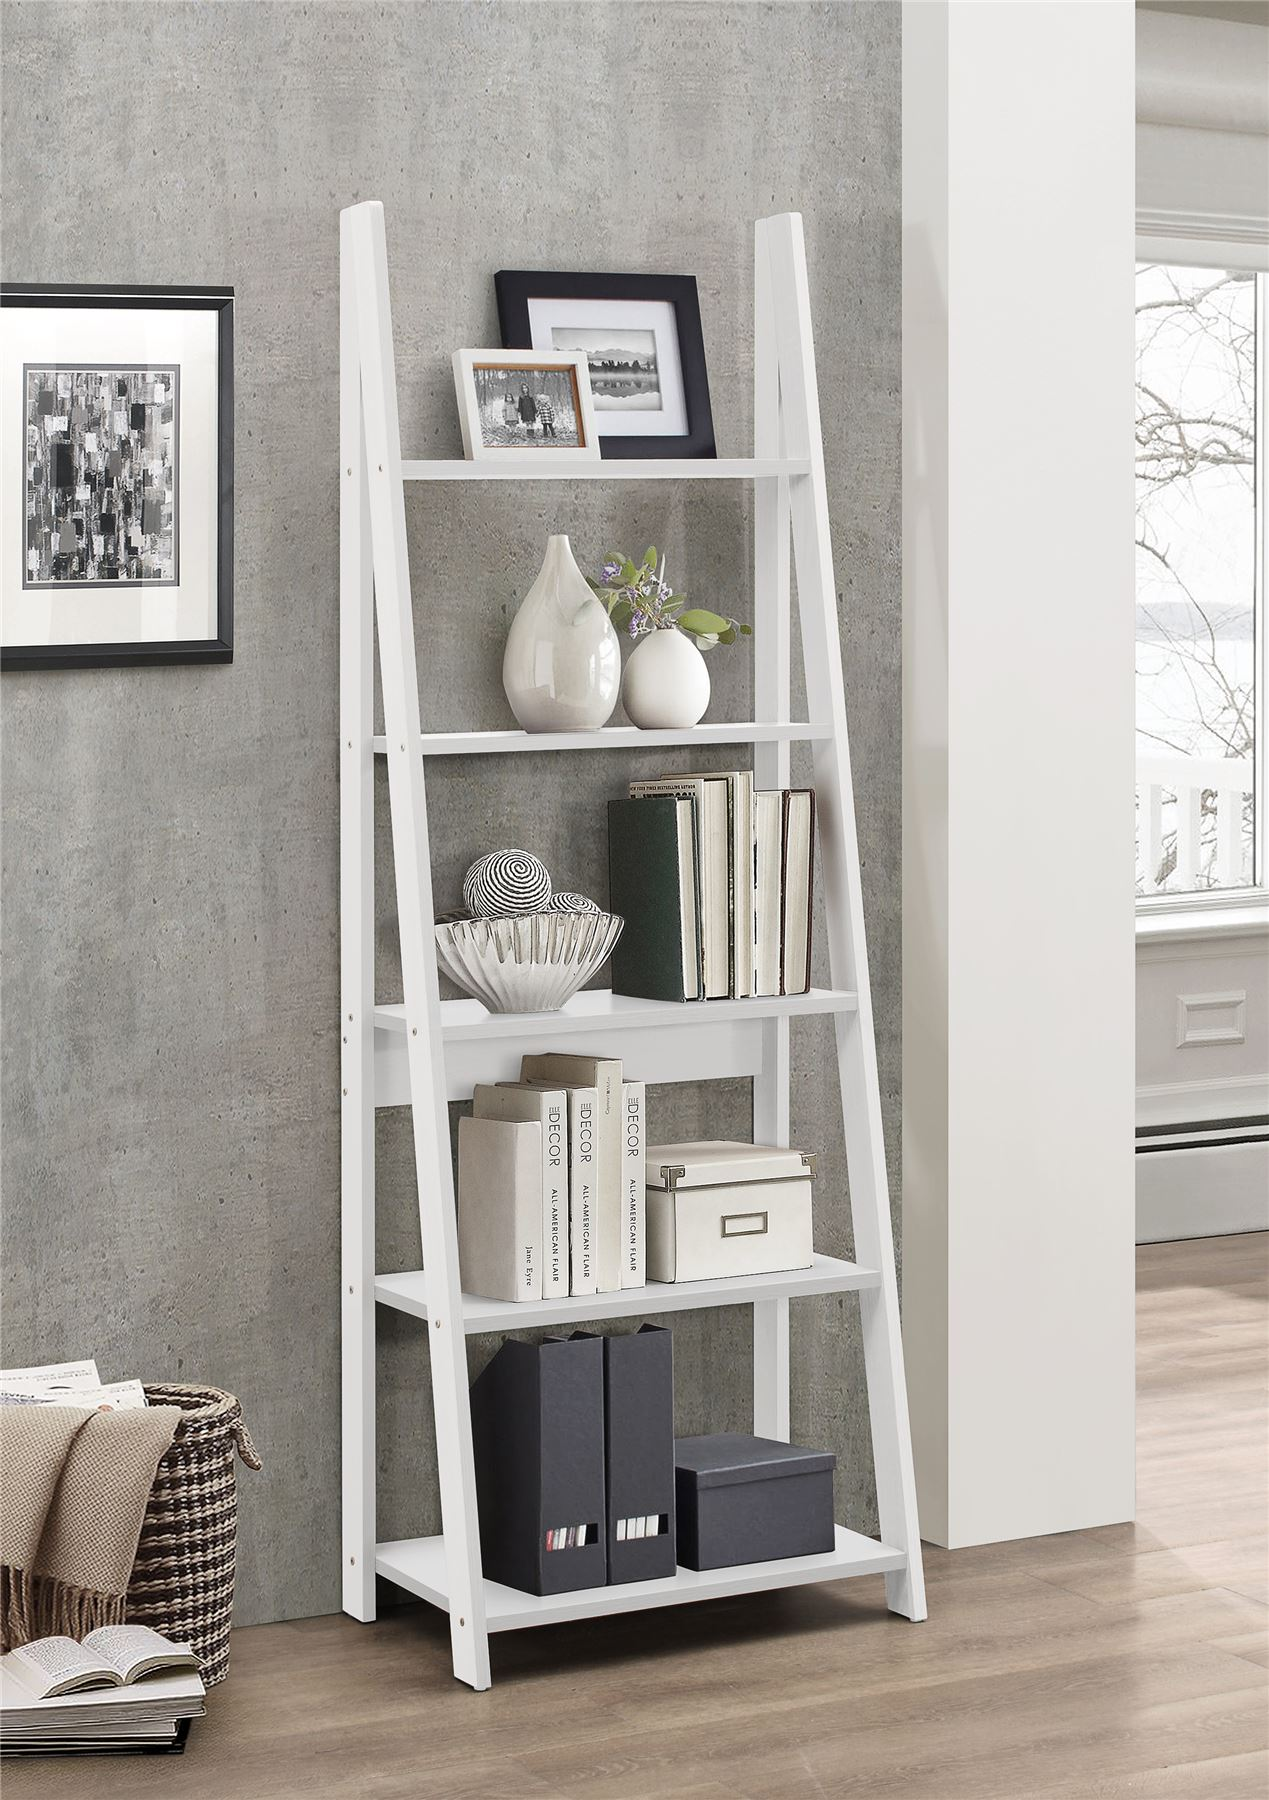 Birlea Nordic Scandinavian Retro Ladder Bookcase Shelving